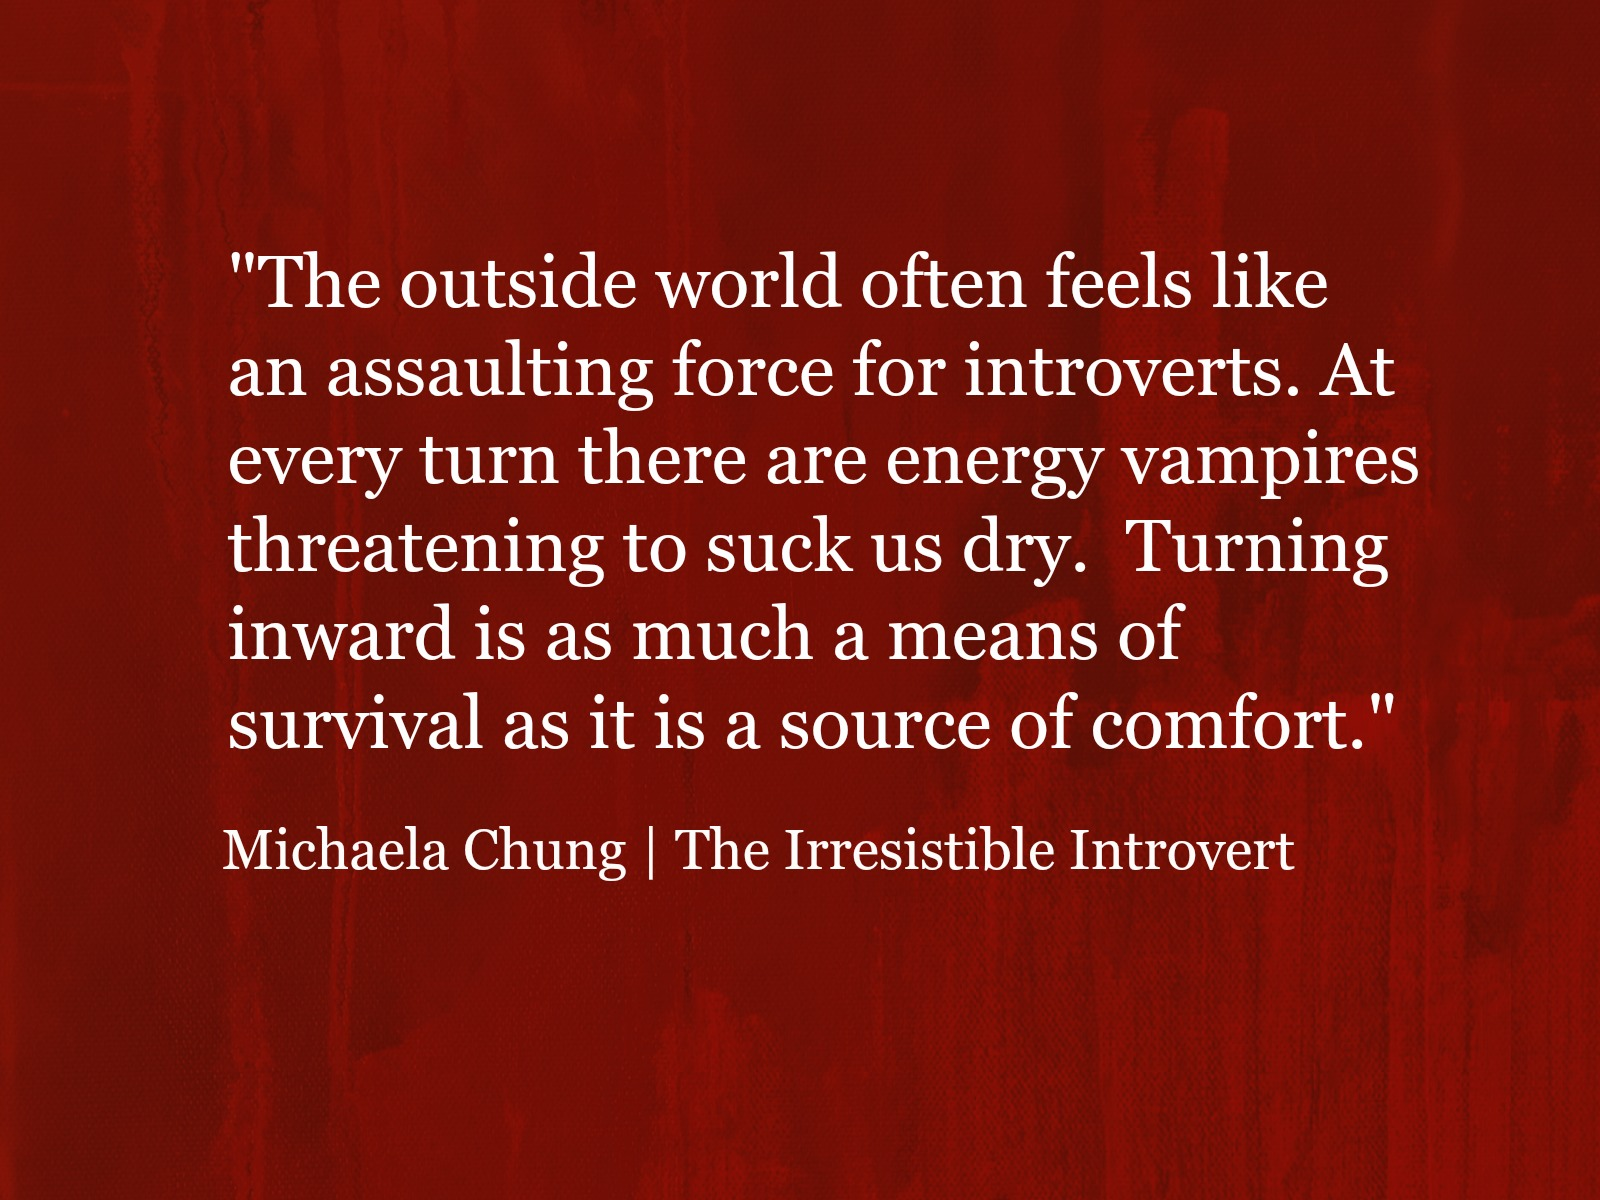 Quotes About Introverts Irresistible Introvert Quotes  Introvert Spring